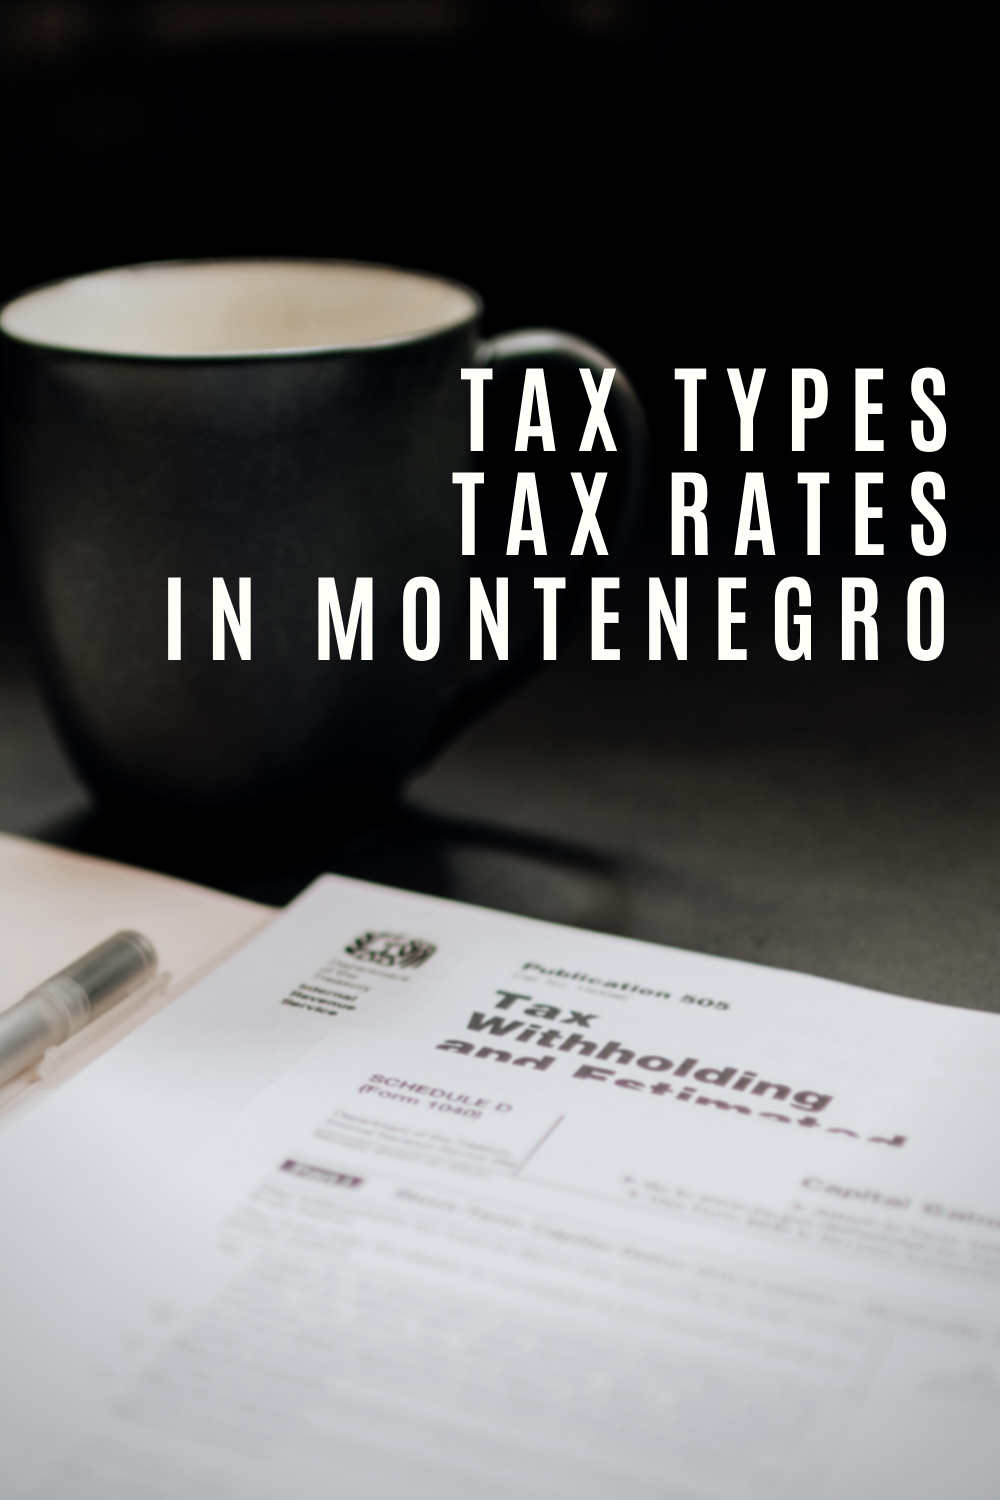 Tax Types and Tax Rates in Montenegro